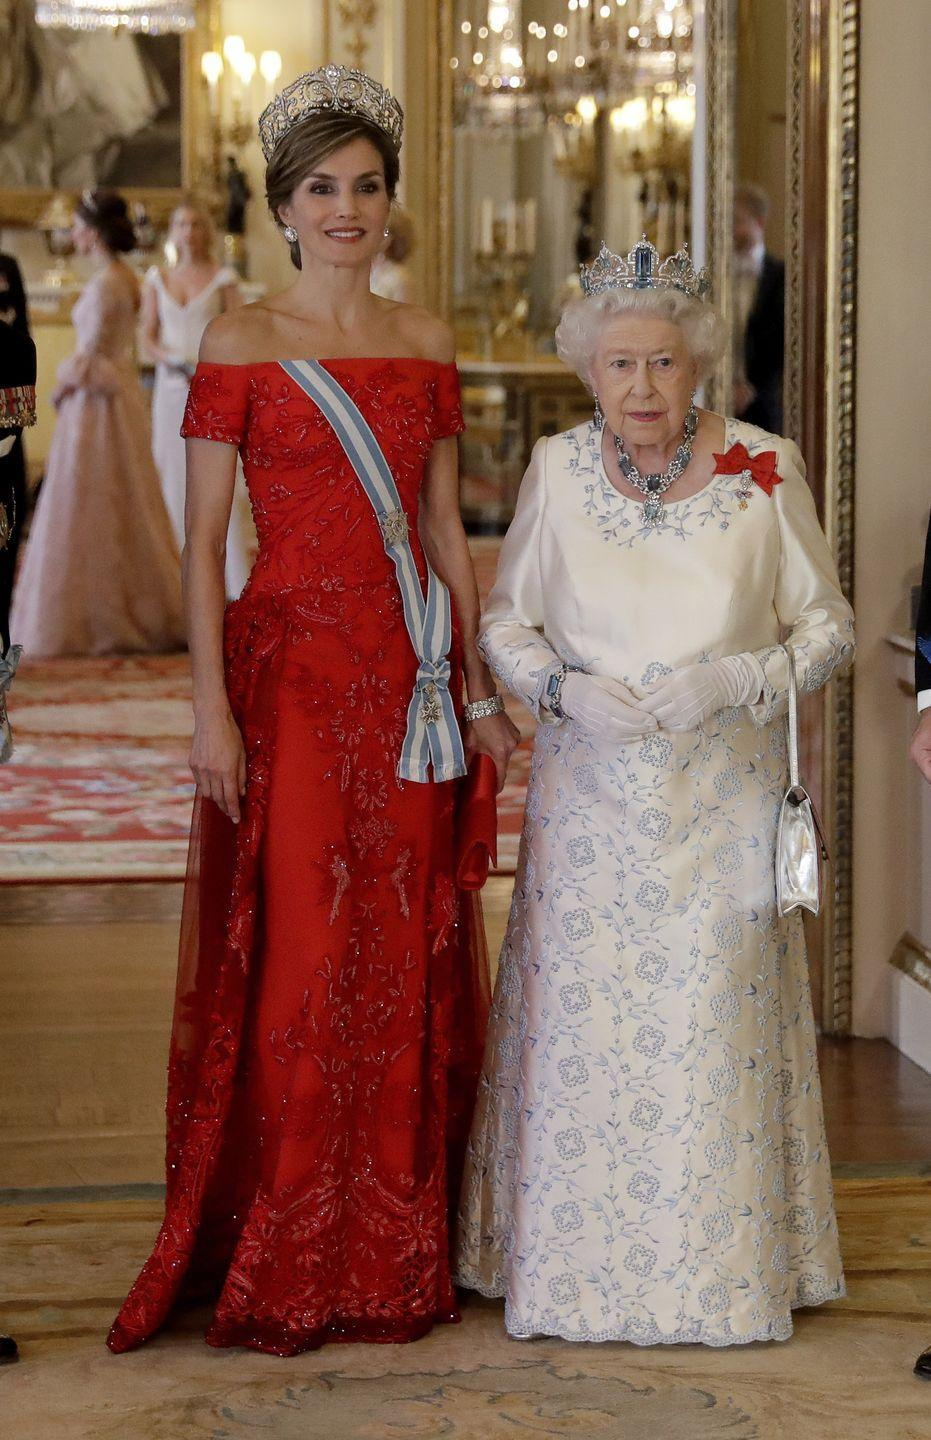 <p>King Felipe and Queen Letizia of Spain embarked on a state visit to the United Kingdom in 2017. Queen Elizabeth hosted the royals for an official state banquet at Buckingham Palace. Letizia wore a striking off-the-shoulder dress with a gorgeous tiara, while the Queen wore a white embroidered gown also with an equally impressive tiara. </p>